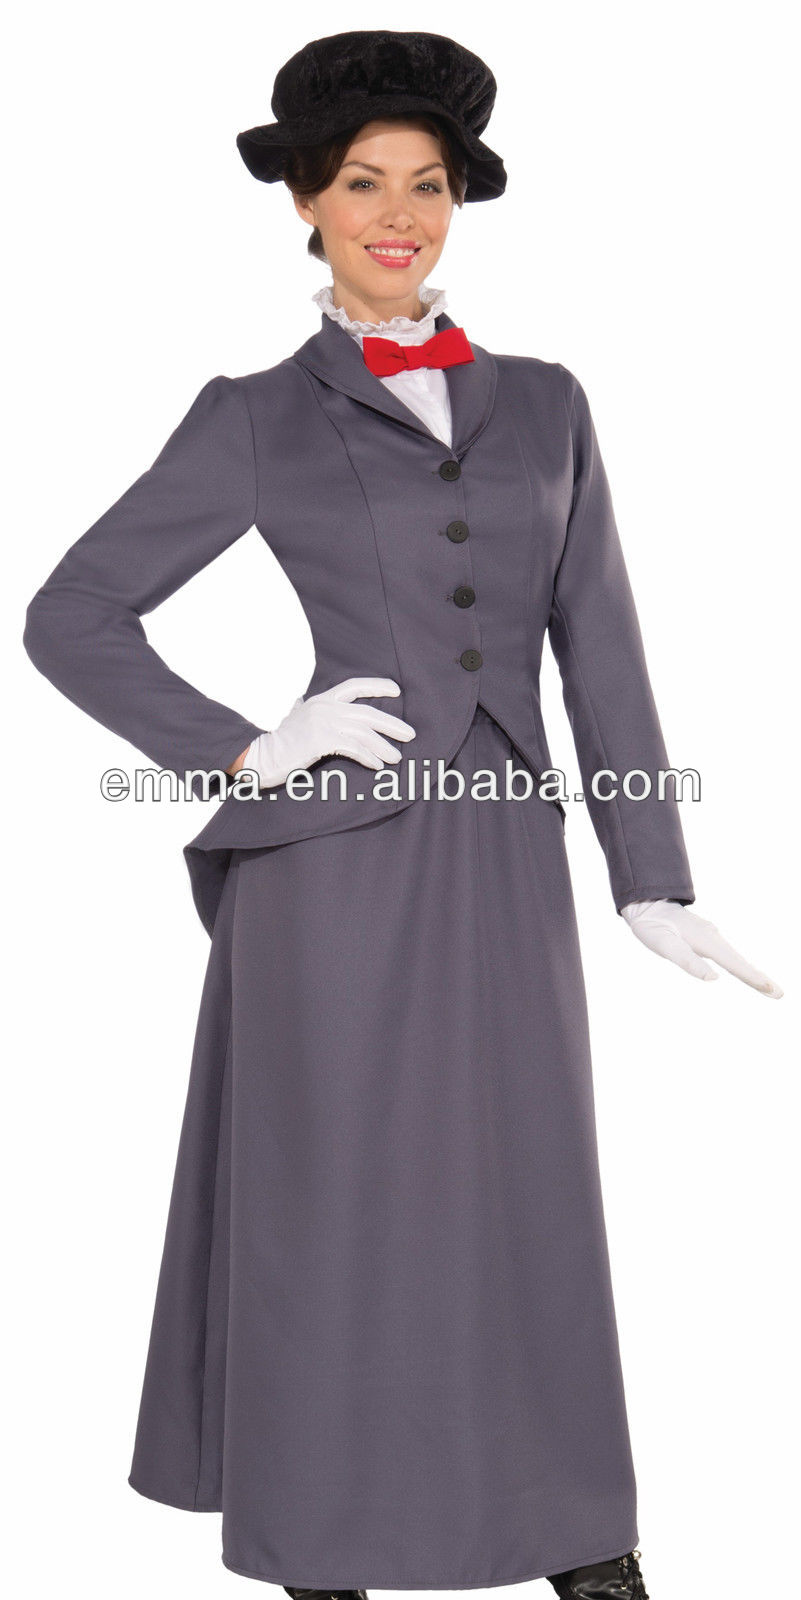 Womens Mary Poppins Victorian English Halloween Costume ...